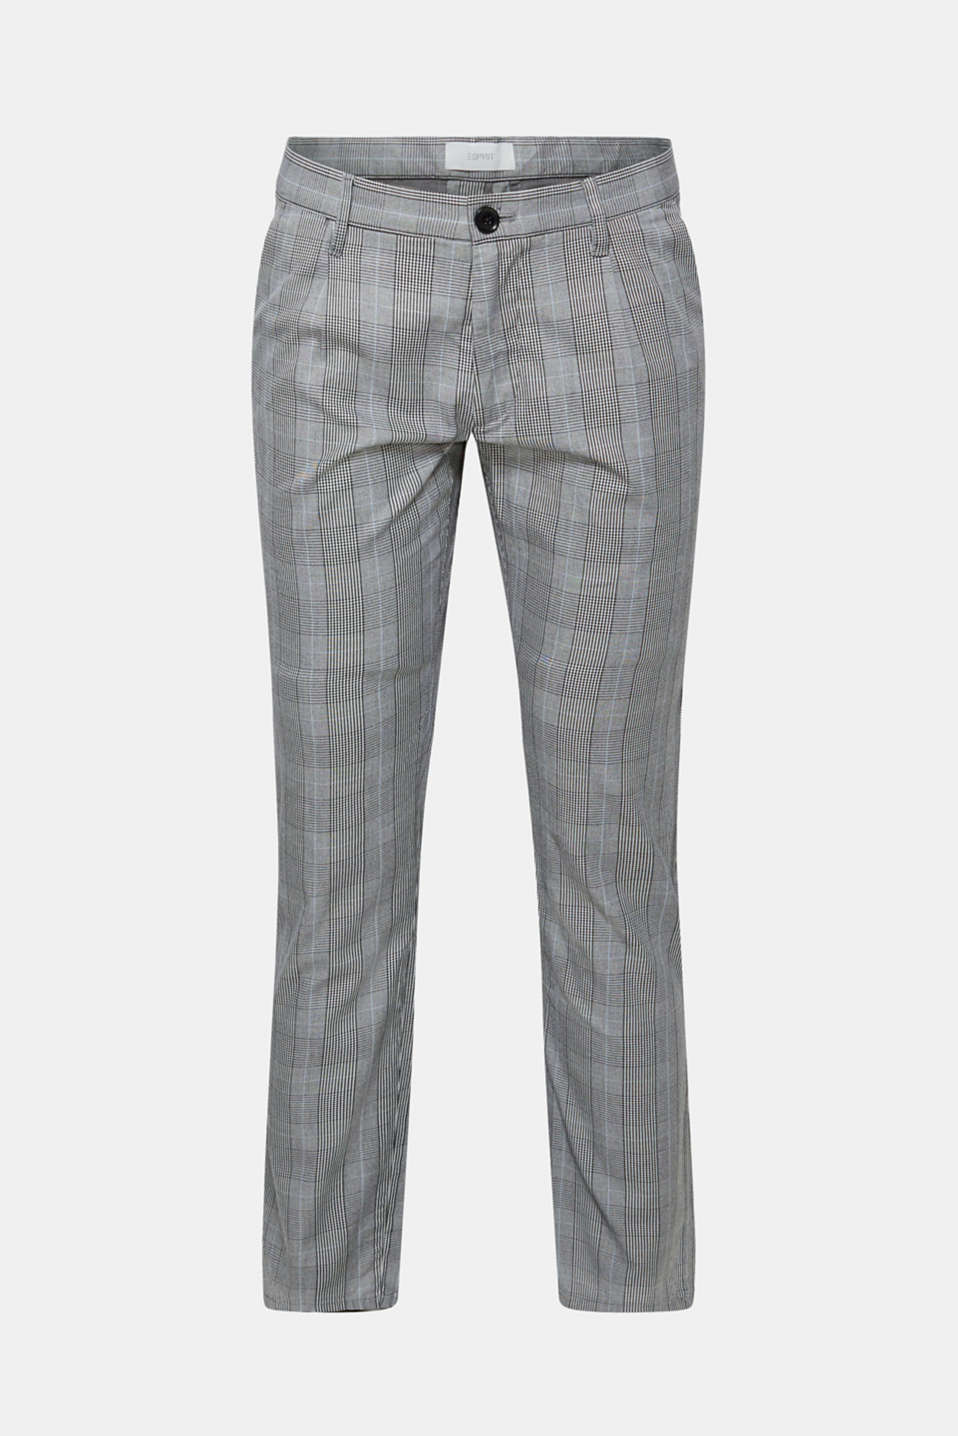 Trousers with a check pattern, made of stretch cotton, ANTHRACITE, detail image number 5